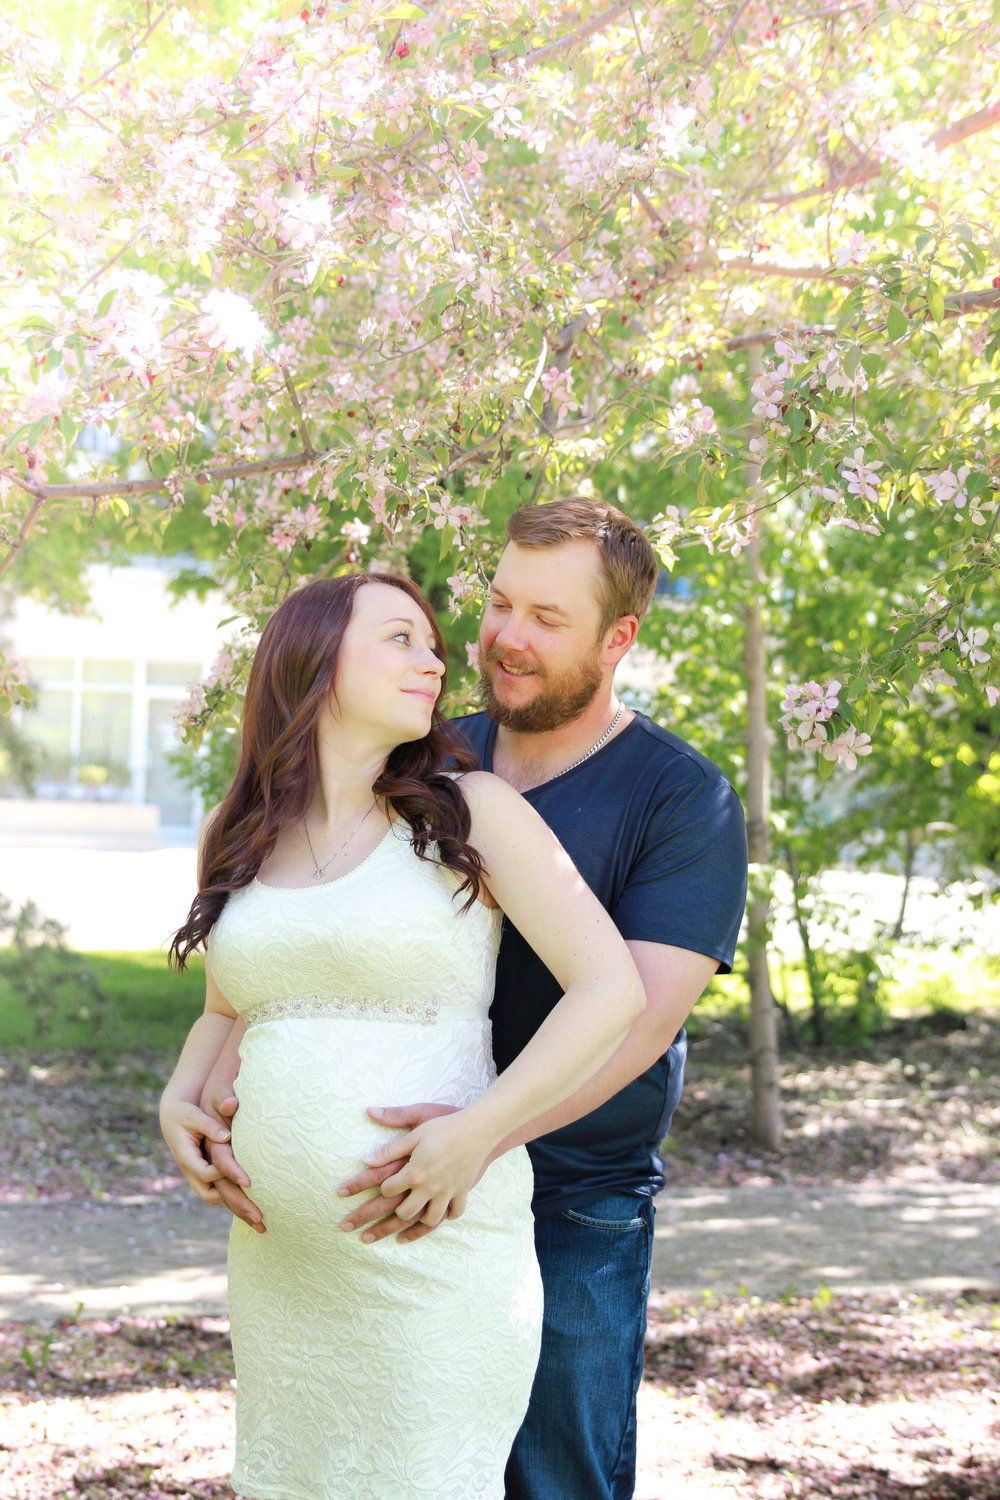 M&P {Expecting!}_WEB-53.jpg